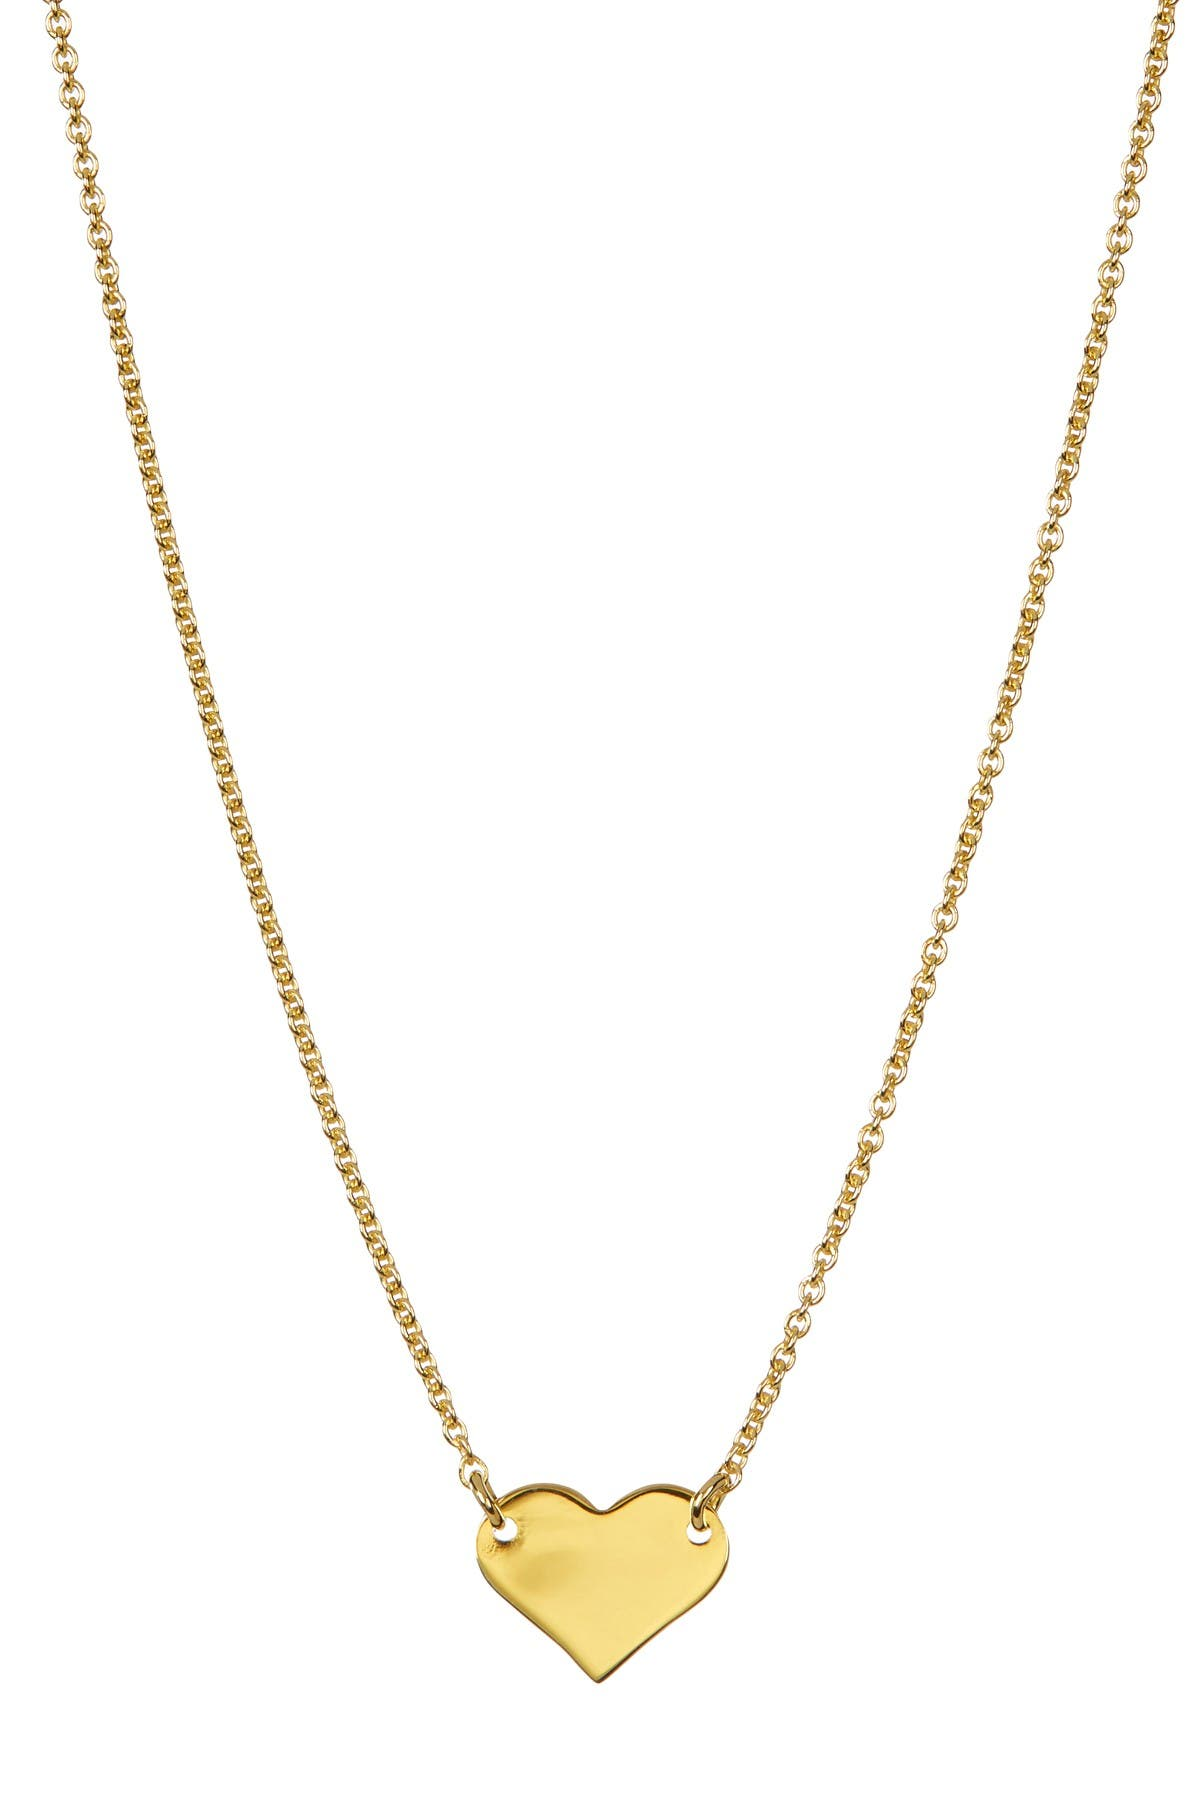 ADORNIA 14K Yellow Gold Plated Sterling Silver Heart Necklace